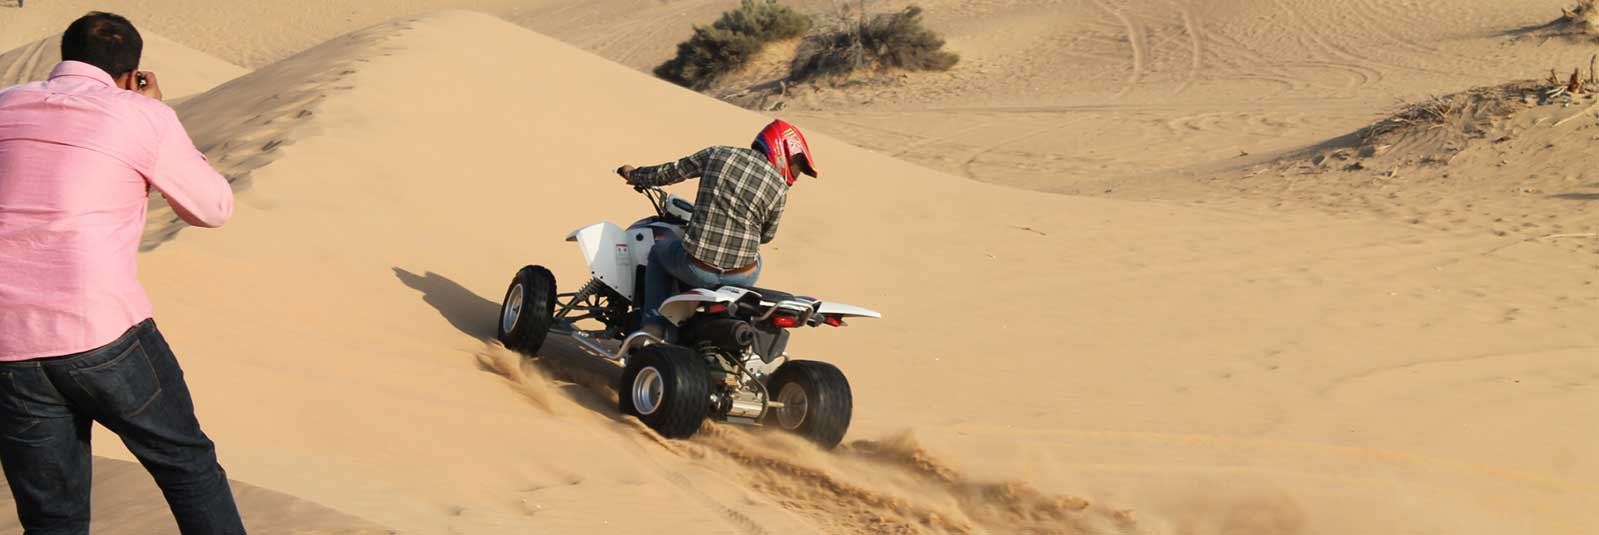 Quad-Bike-Safari.jpg